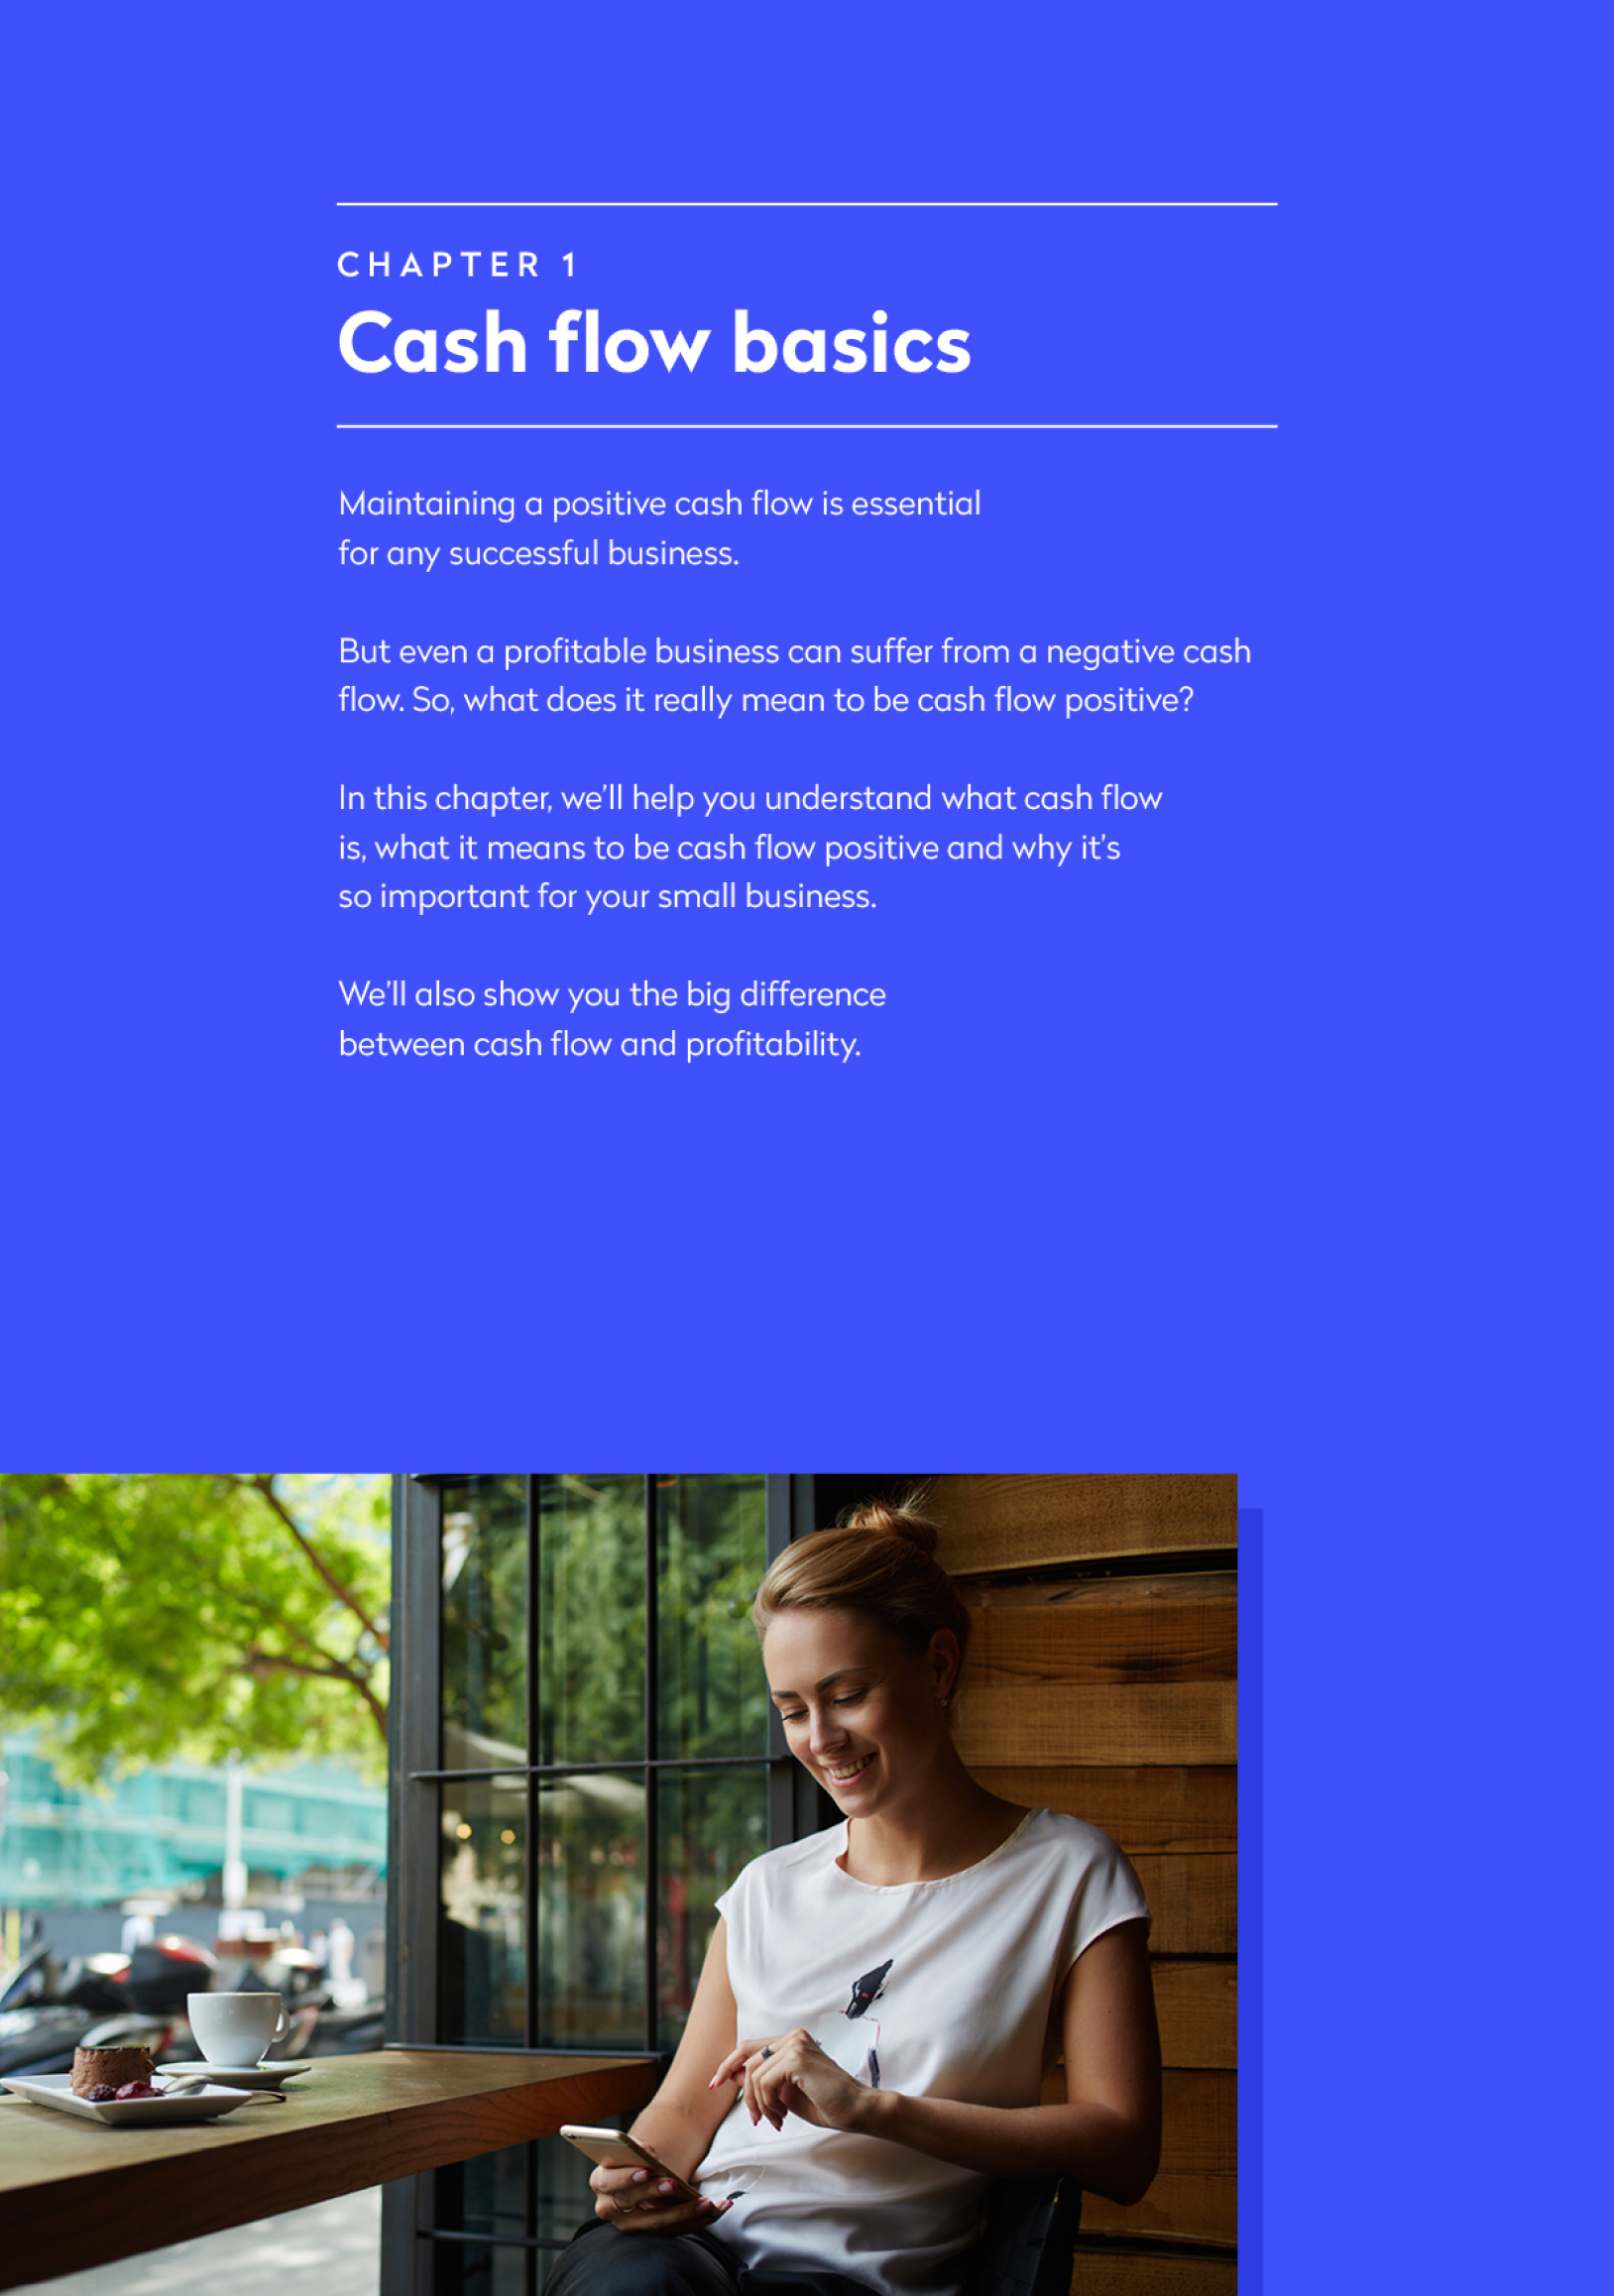 Screenshot of the cash flow basics page of the ebook